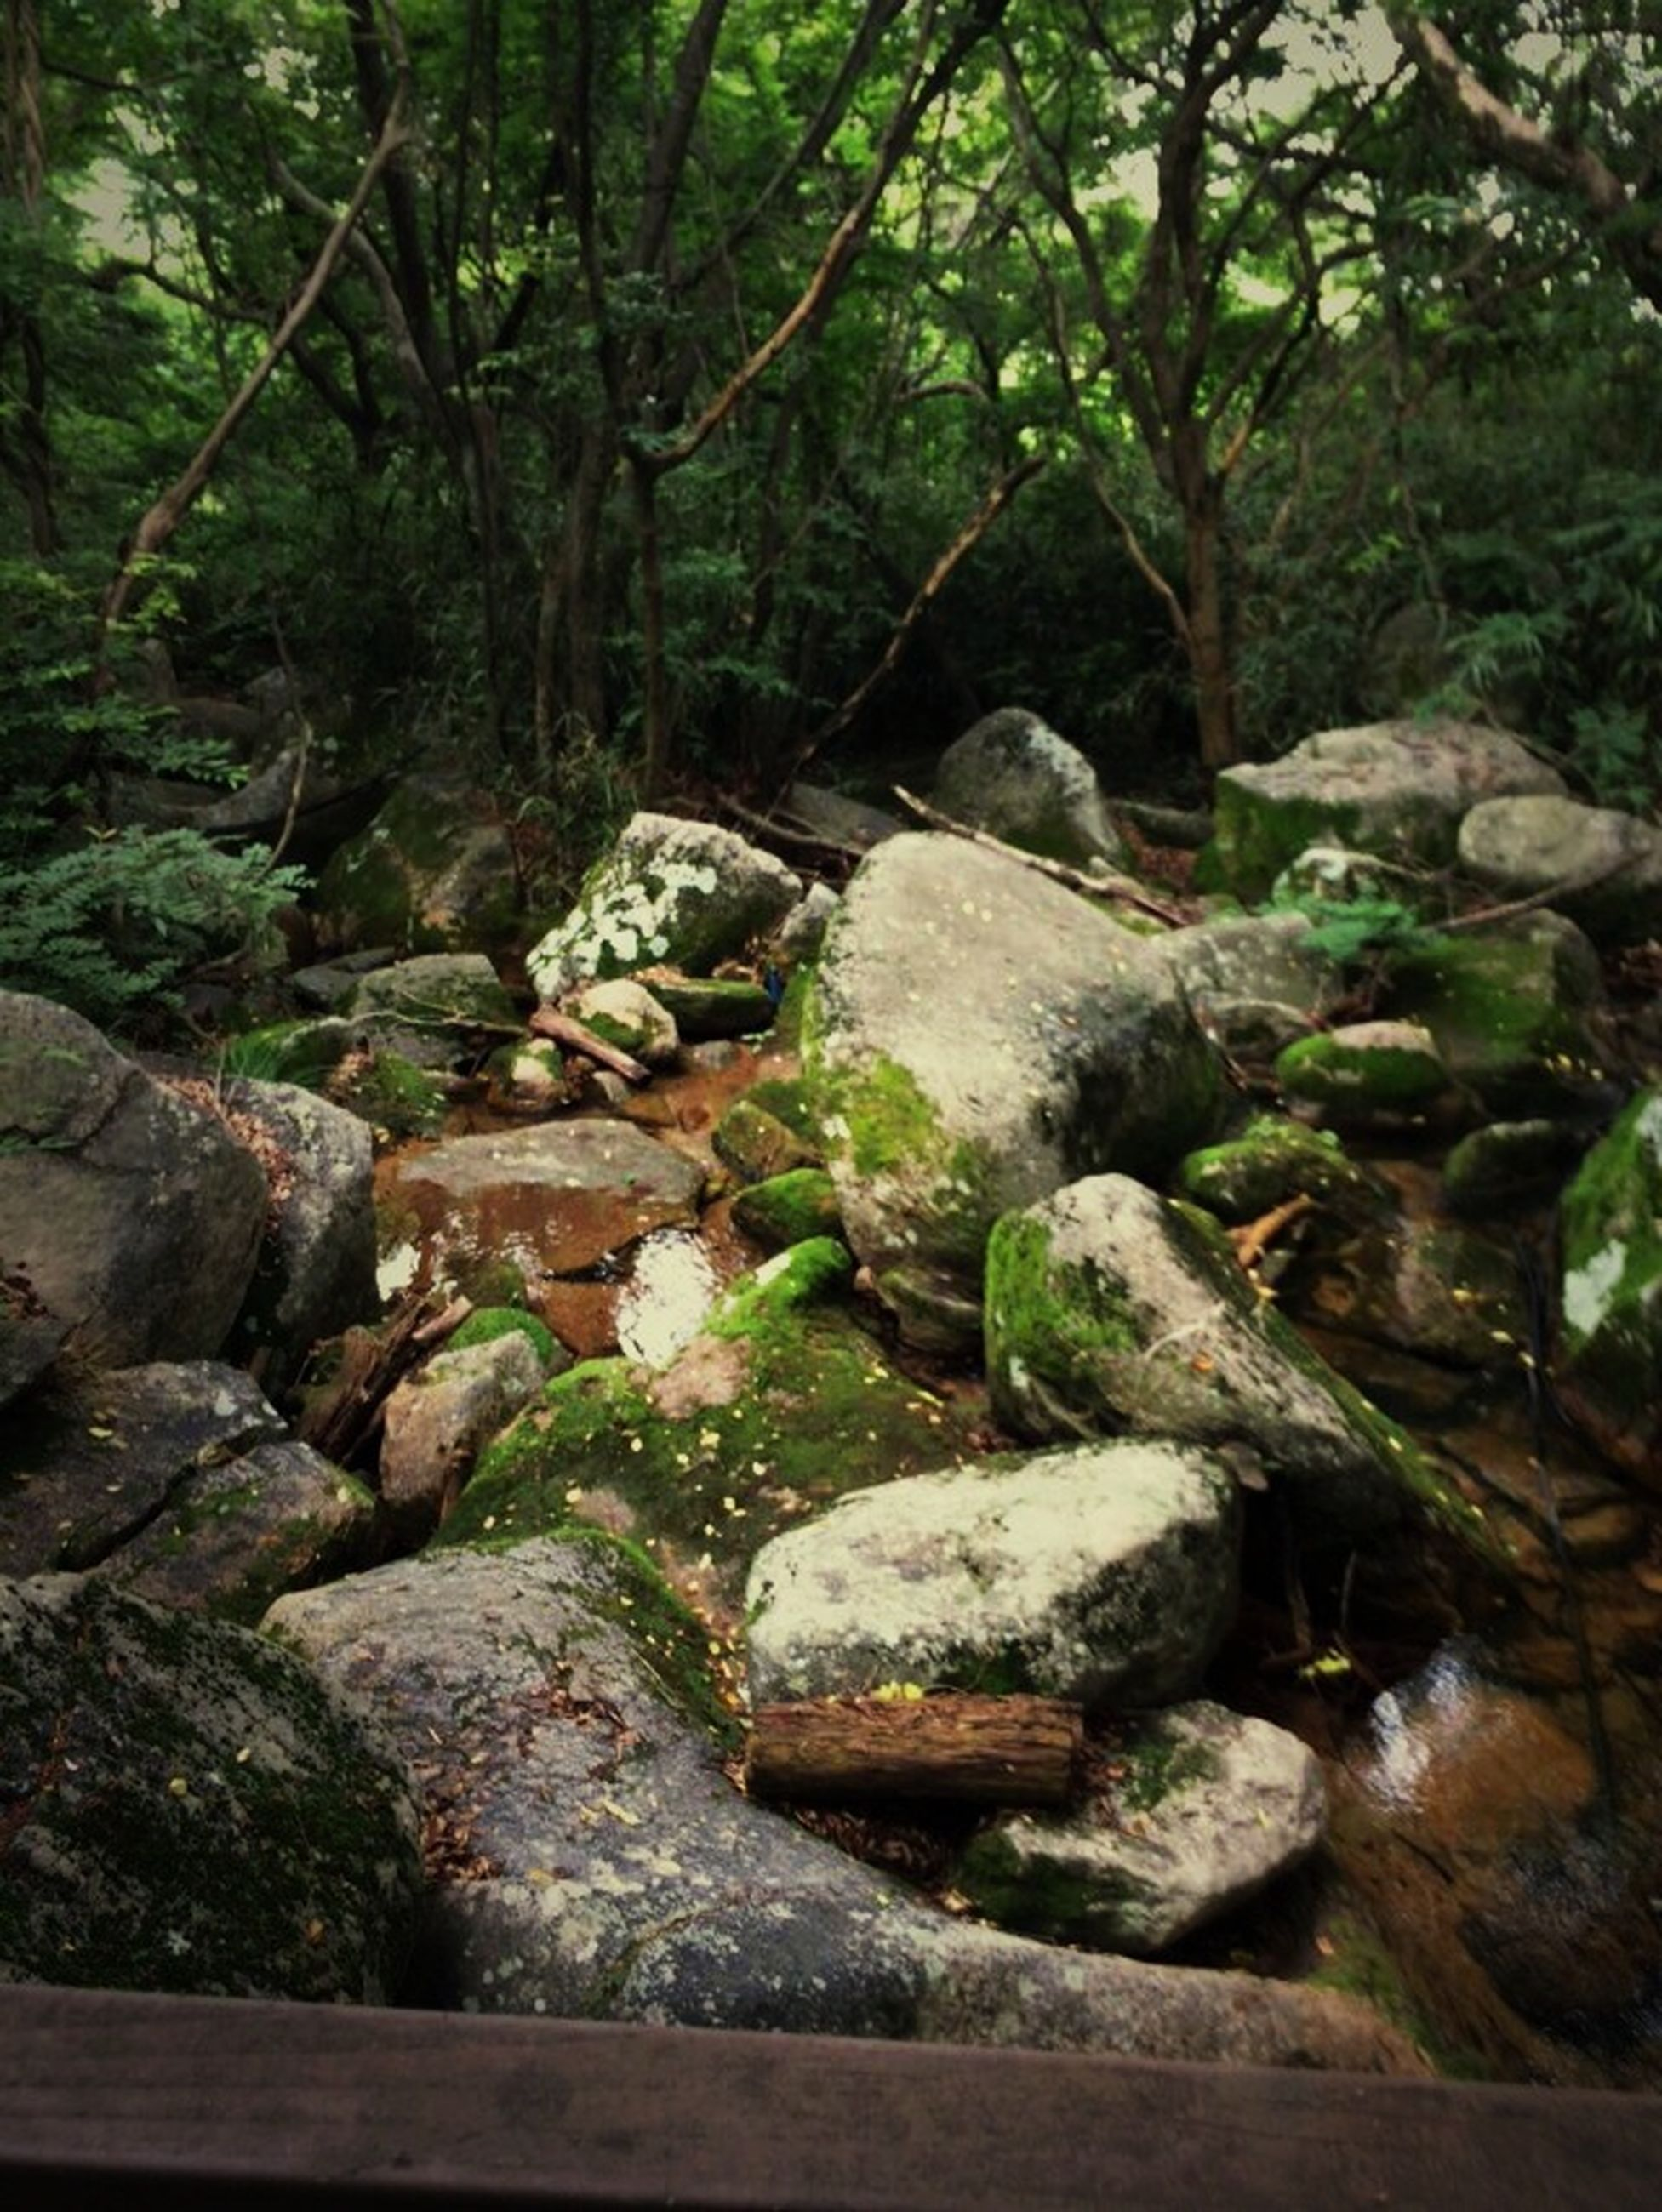 tree, forest, rock - object, tranquility, nature, beauty in nature, green color, growth, tranquil scene, scenics, moss, stream, water, day, non-urban scene, outdoors, tree trunk, no people, rock, plant